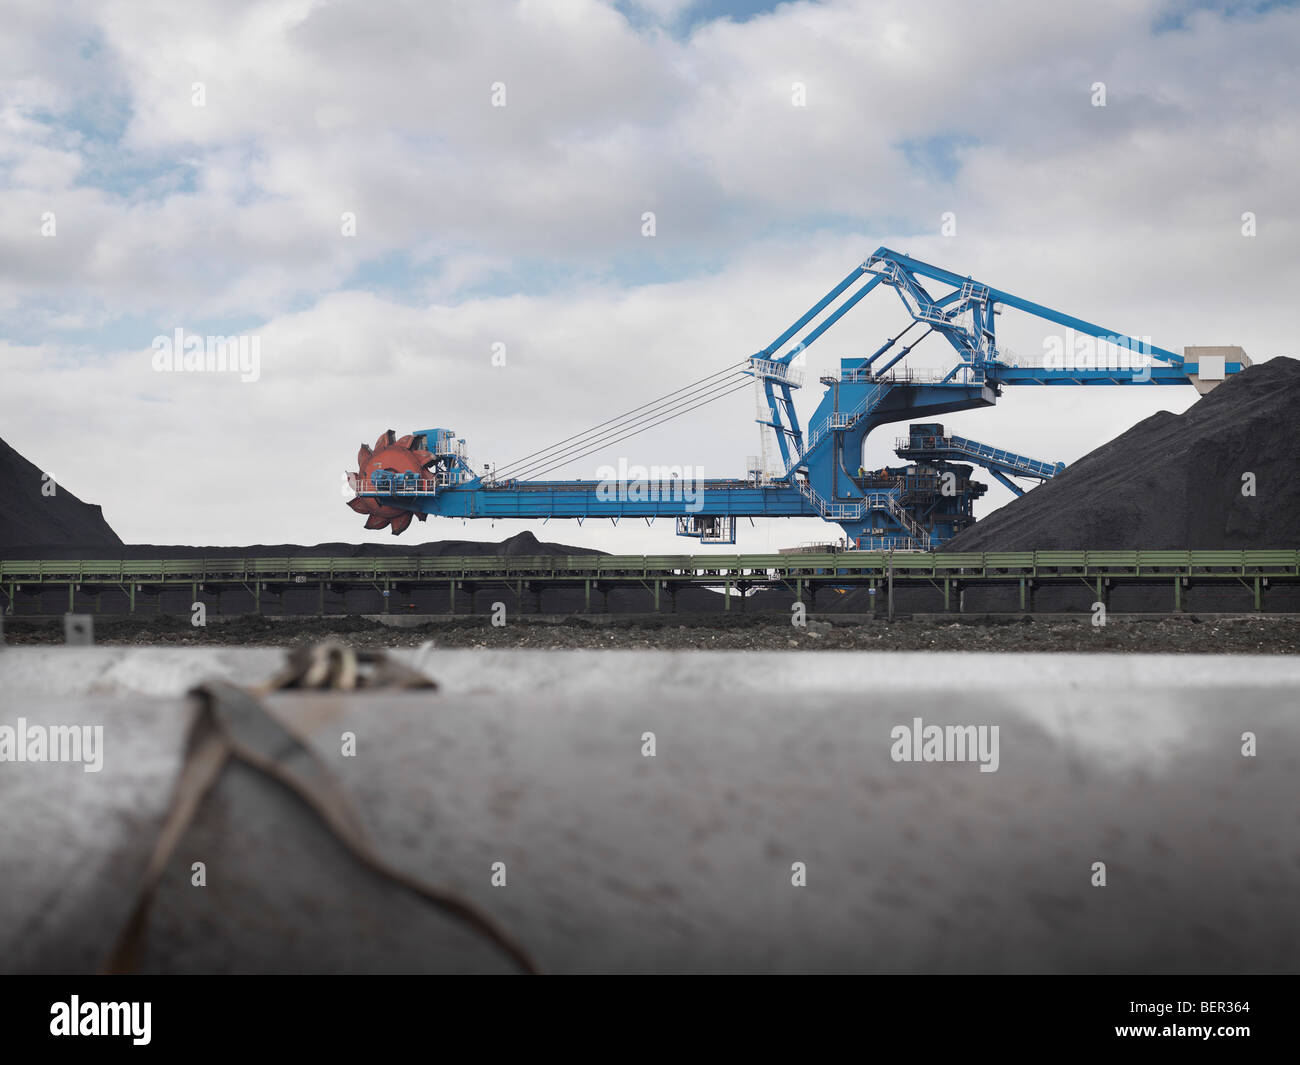 Heavy Machinery At Port - Stock Image